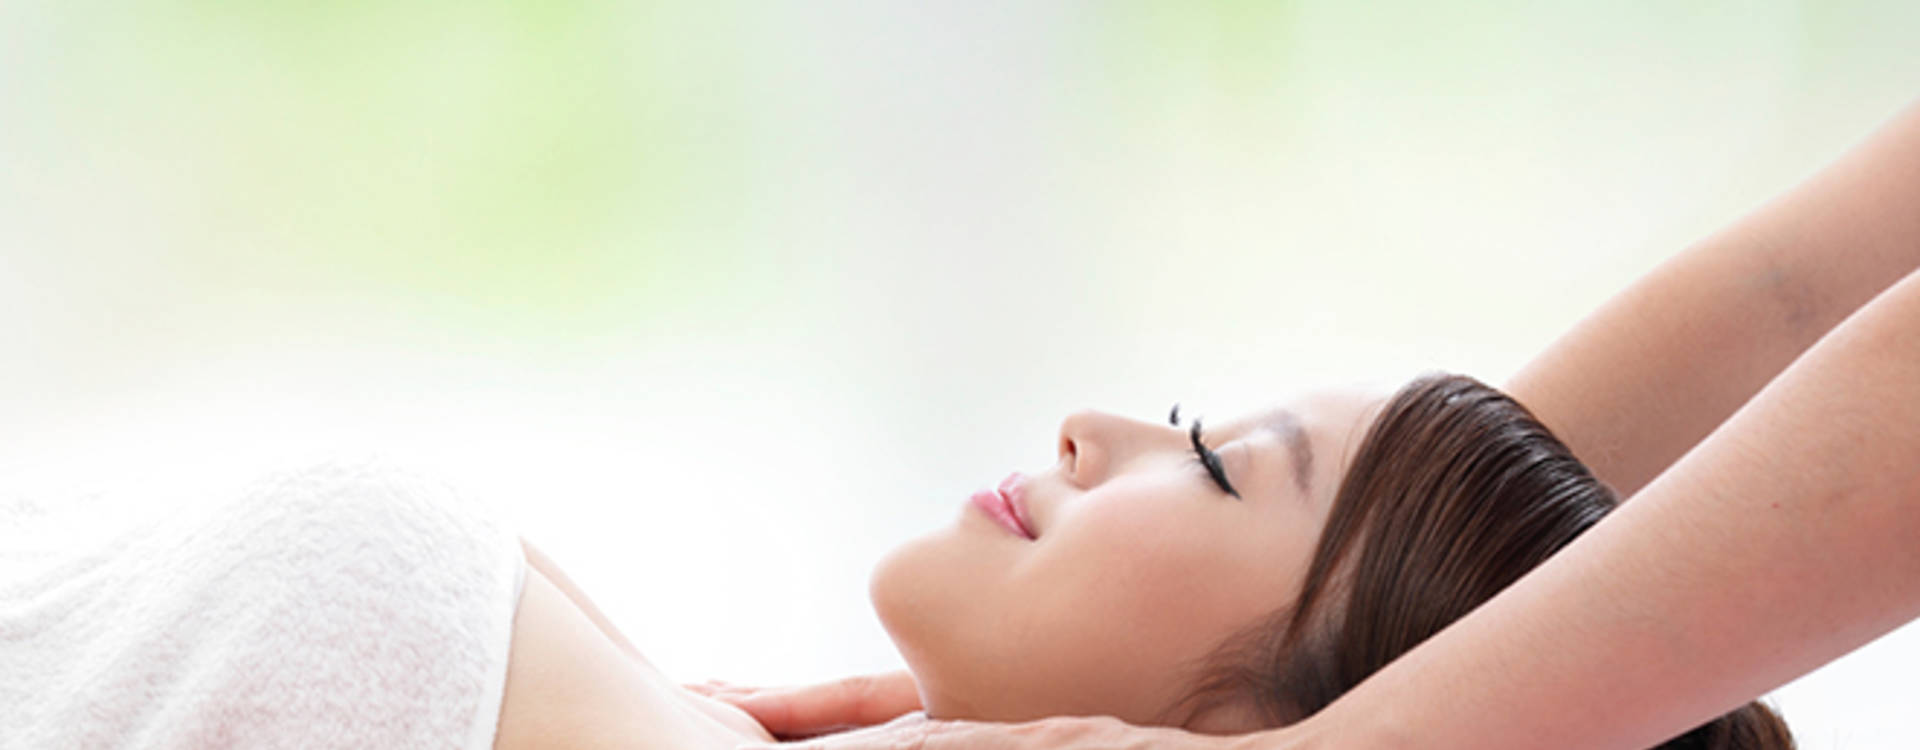 Complimentary 50 minutes' body massage at Health Club for one - Pan